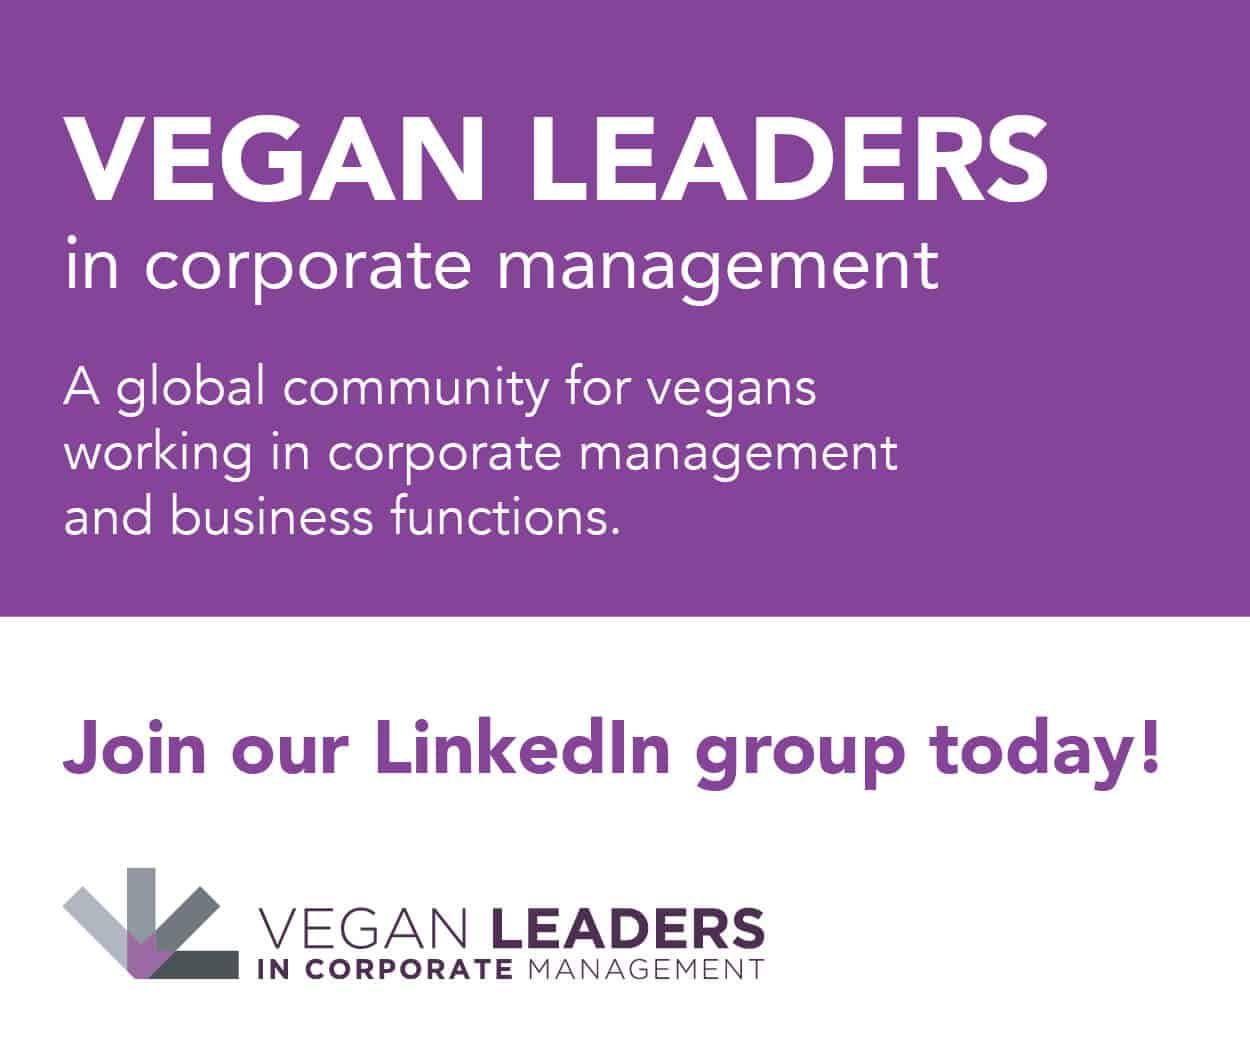 Vegan Leaders in Corporate Management - A global community for vegans working in corporate management and business functions.